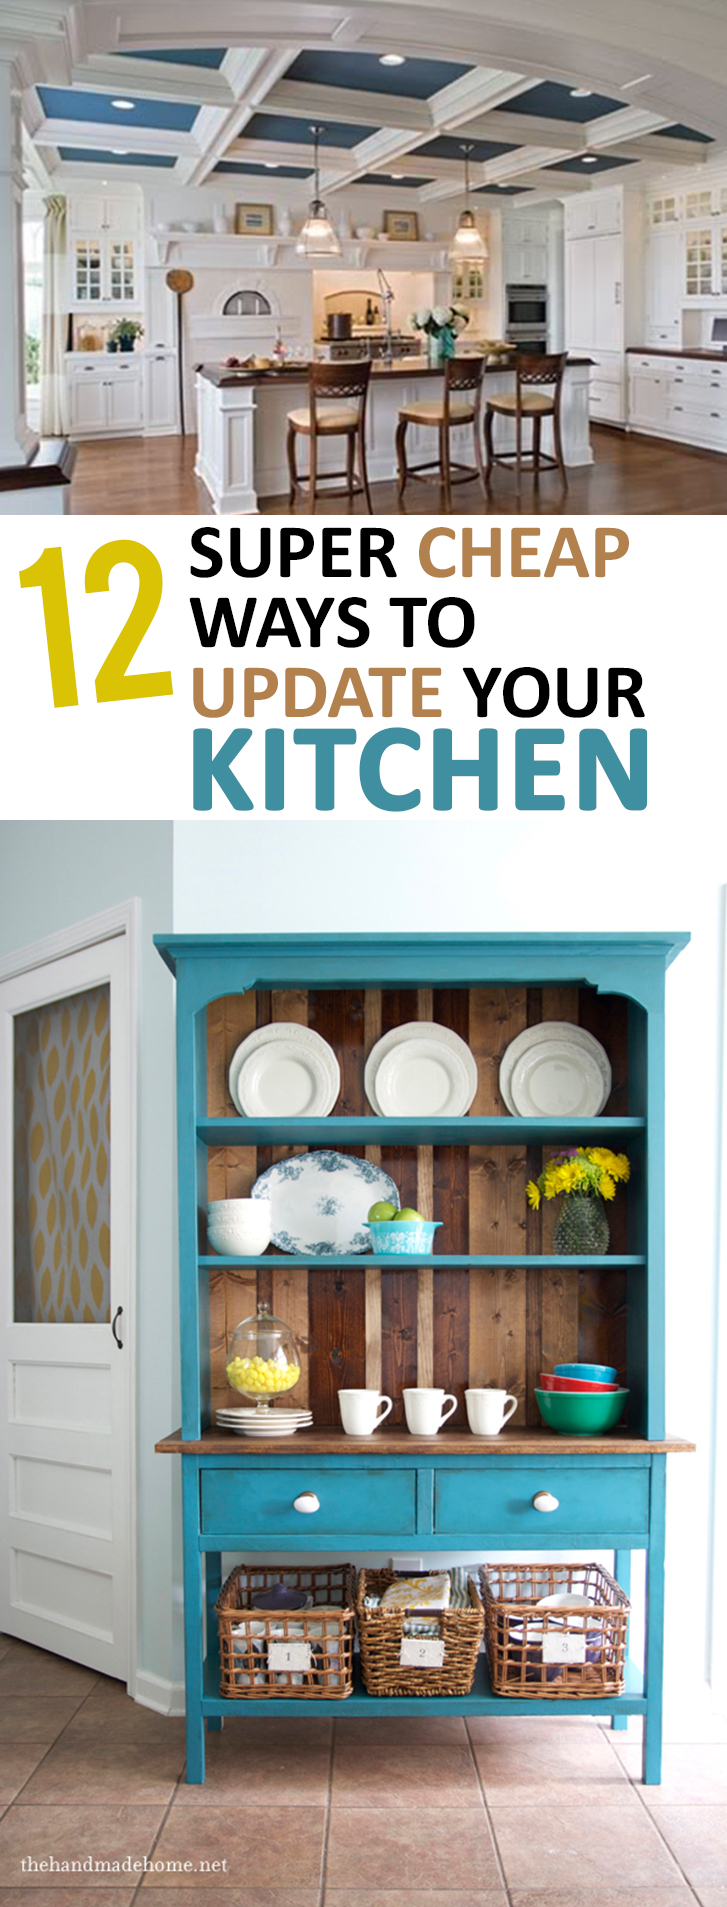 12 Super Cheap Ways To Update Your Kitchen: how to redesign your kitchen